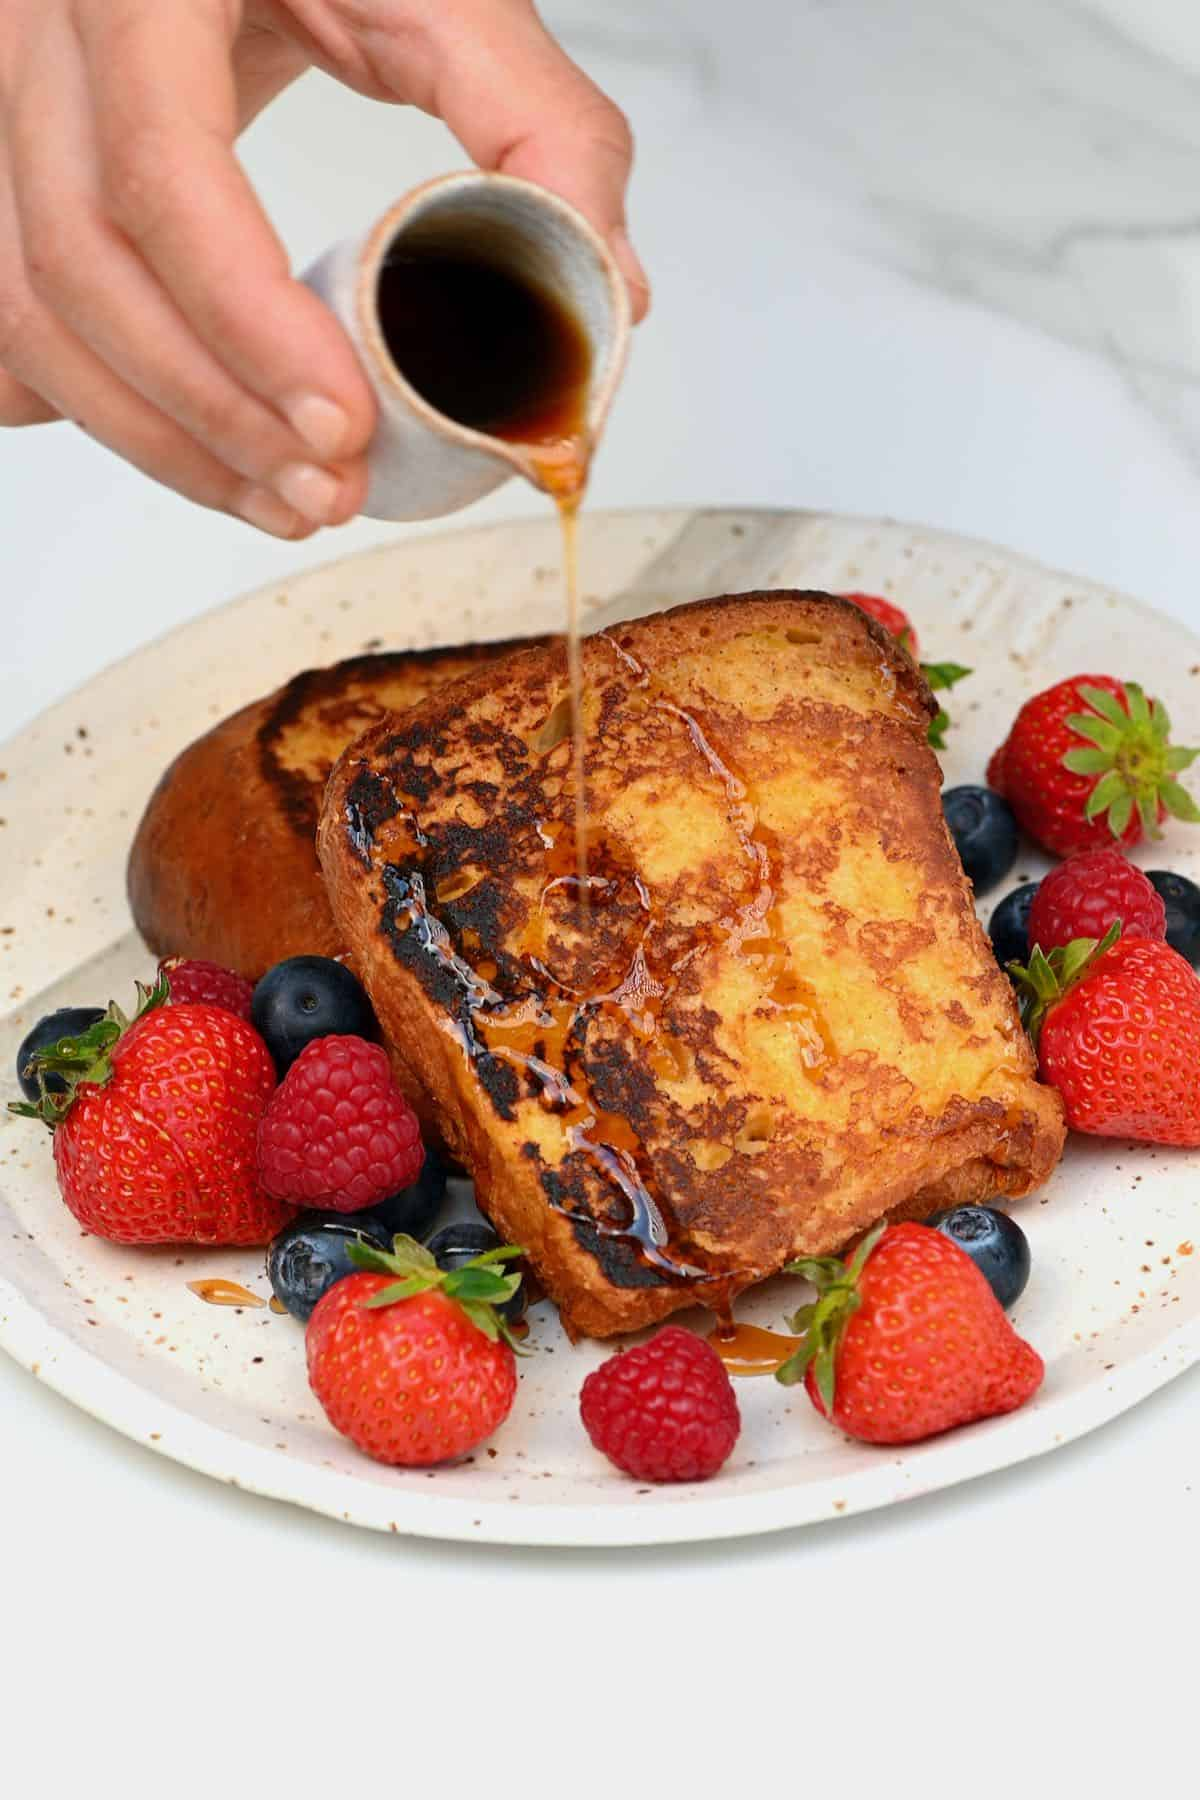 Pouring maple on brioche French toast